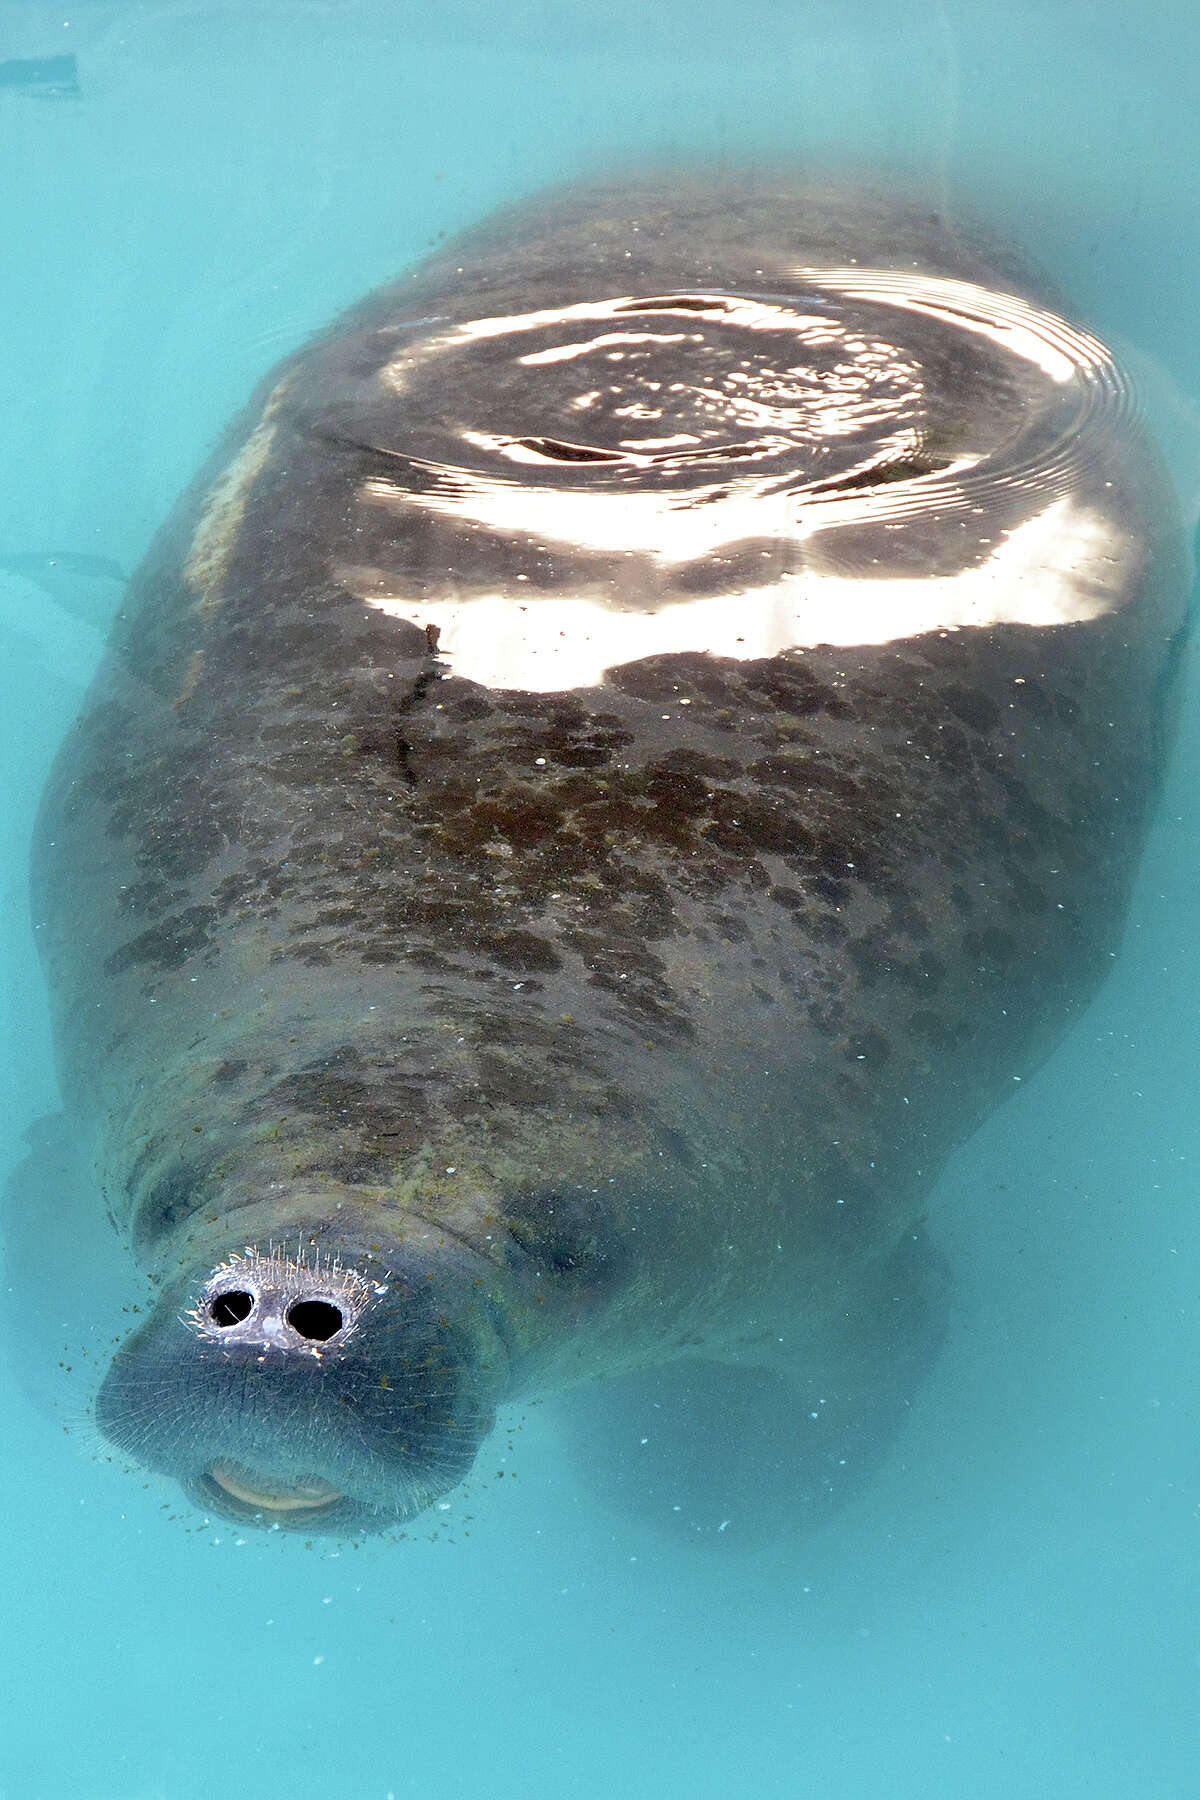 The rescued manatee that spent almost three months rehabilitating from malnourishment and injuries at SeaWorld San Antonio will make his way back to Florida. The sea cow, named Trinidad, has come full circle since Nov. 24, when workers at the Chambers County Sheriff's Office found him swimming in the warm water of a power plant's outflow in Trinity Bay near Baytown. At the time, he was about 200 pounds underweight, had no appetite and battled an infection.